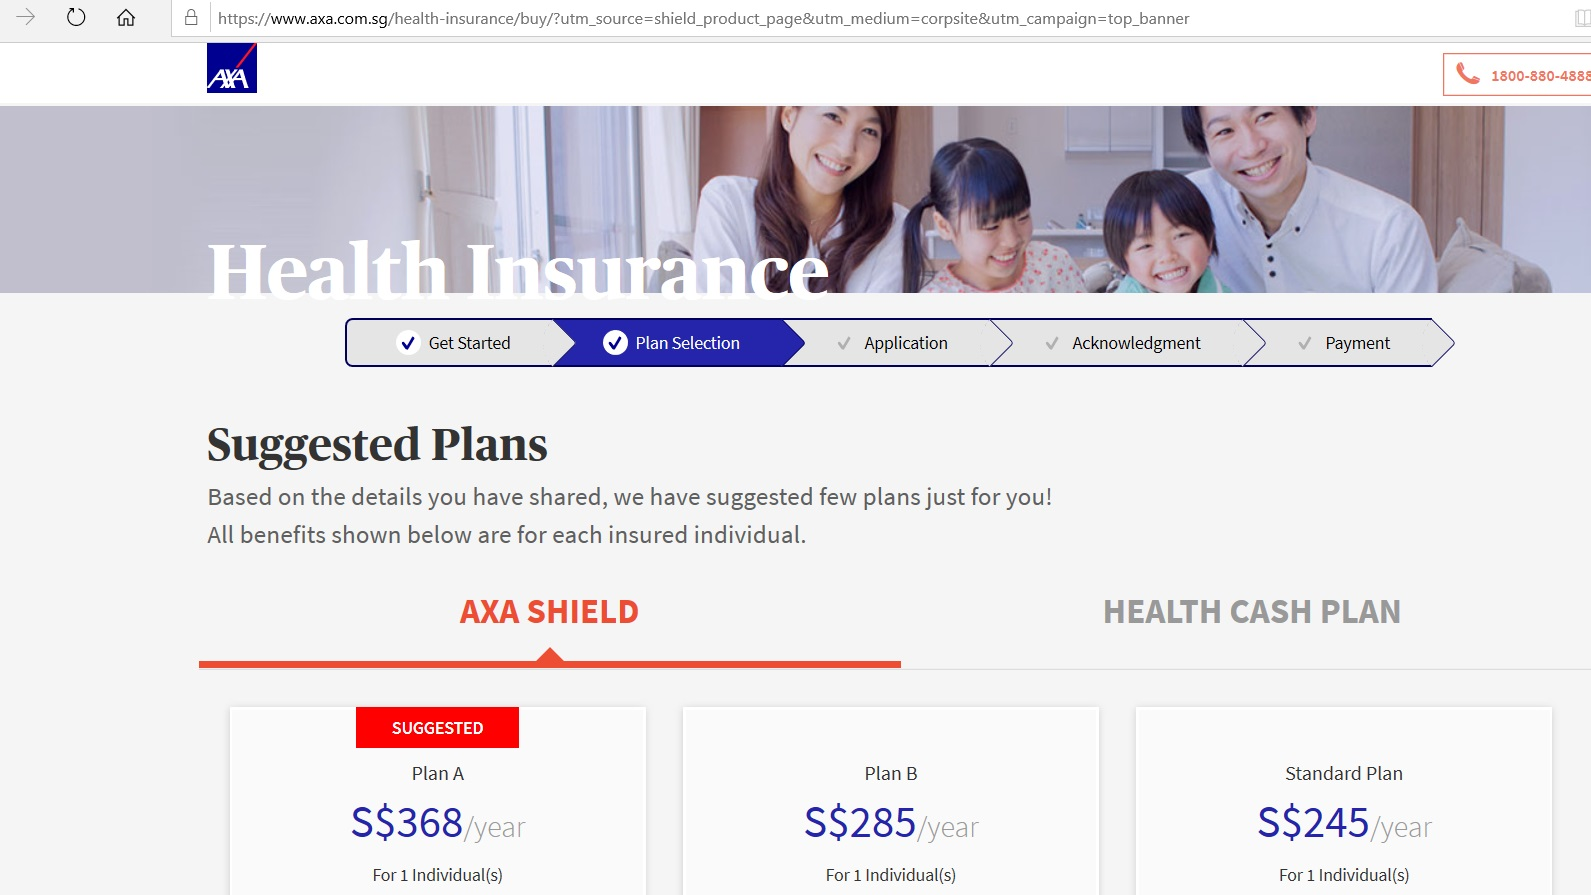 Suggested insurance plans based on details provided.